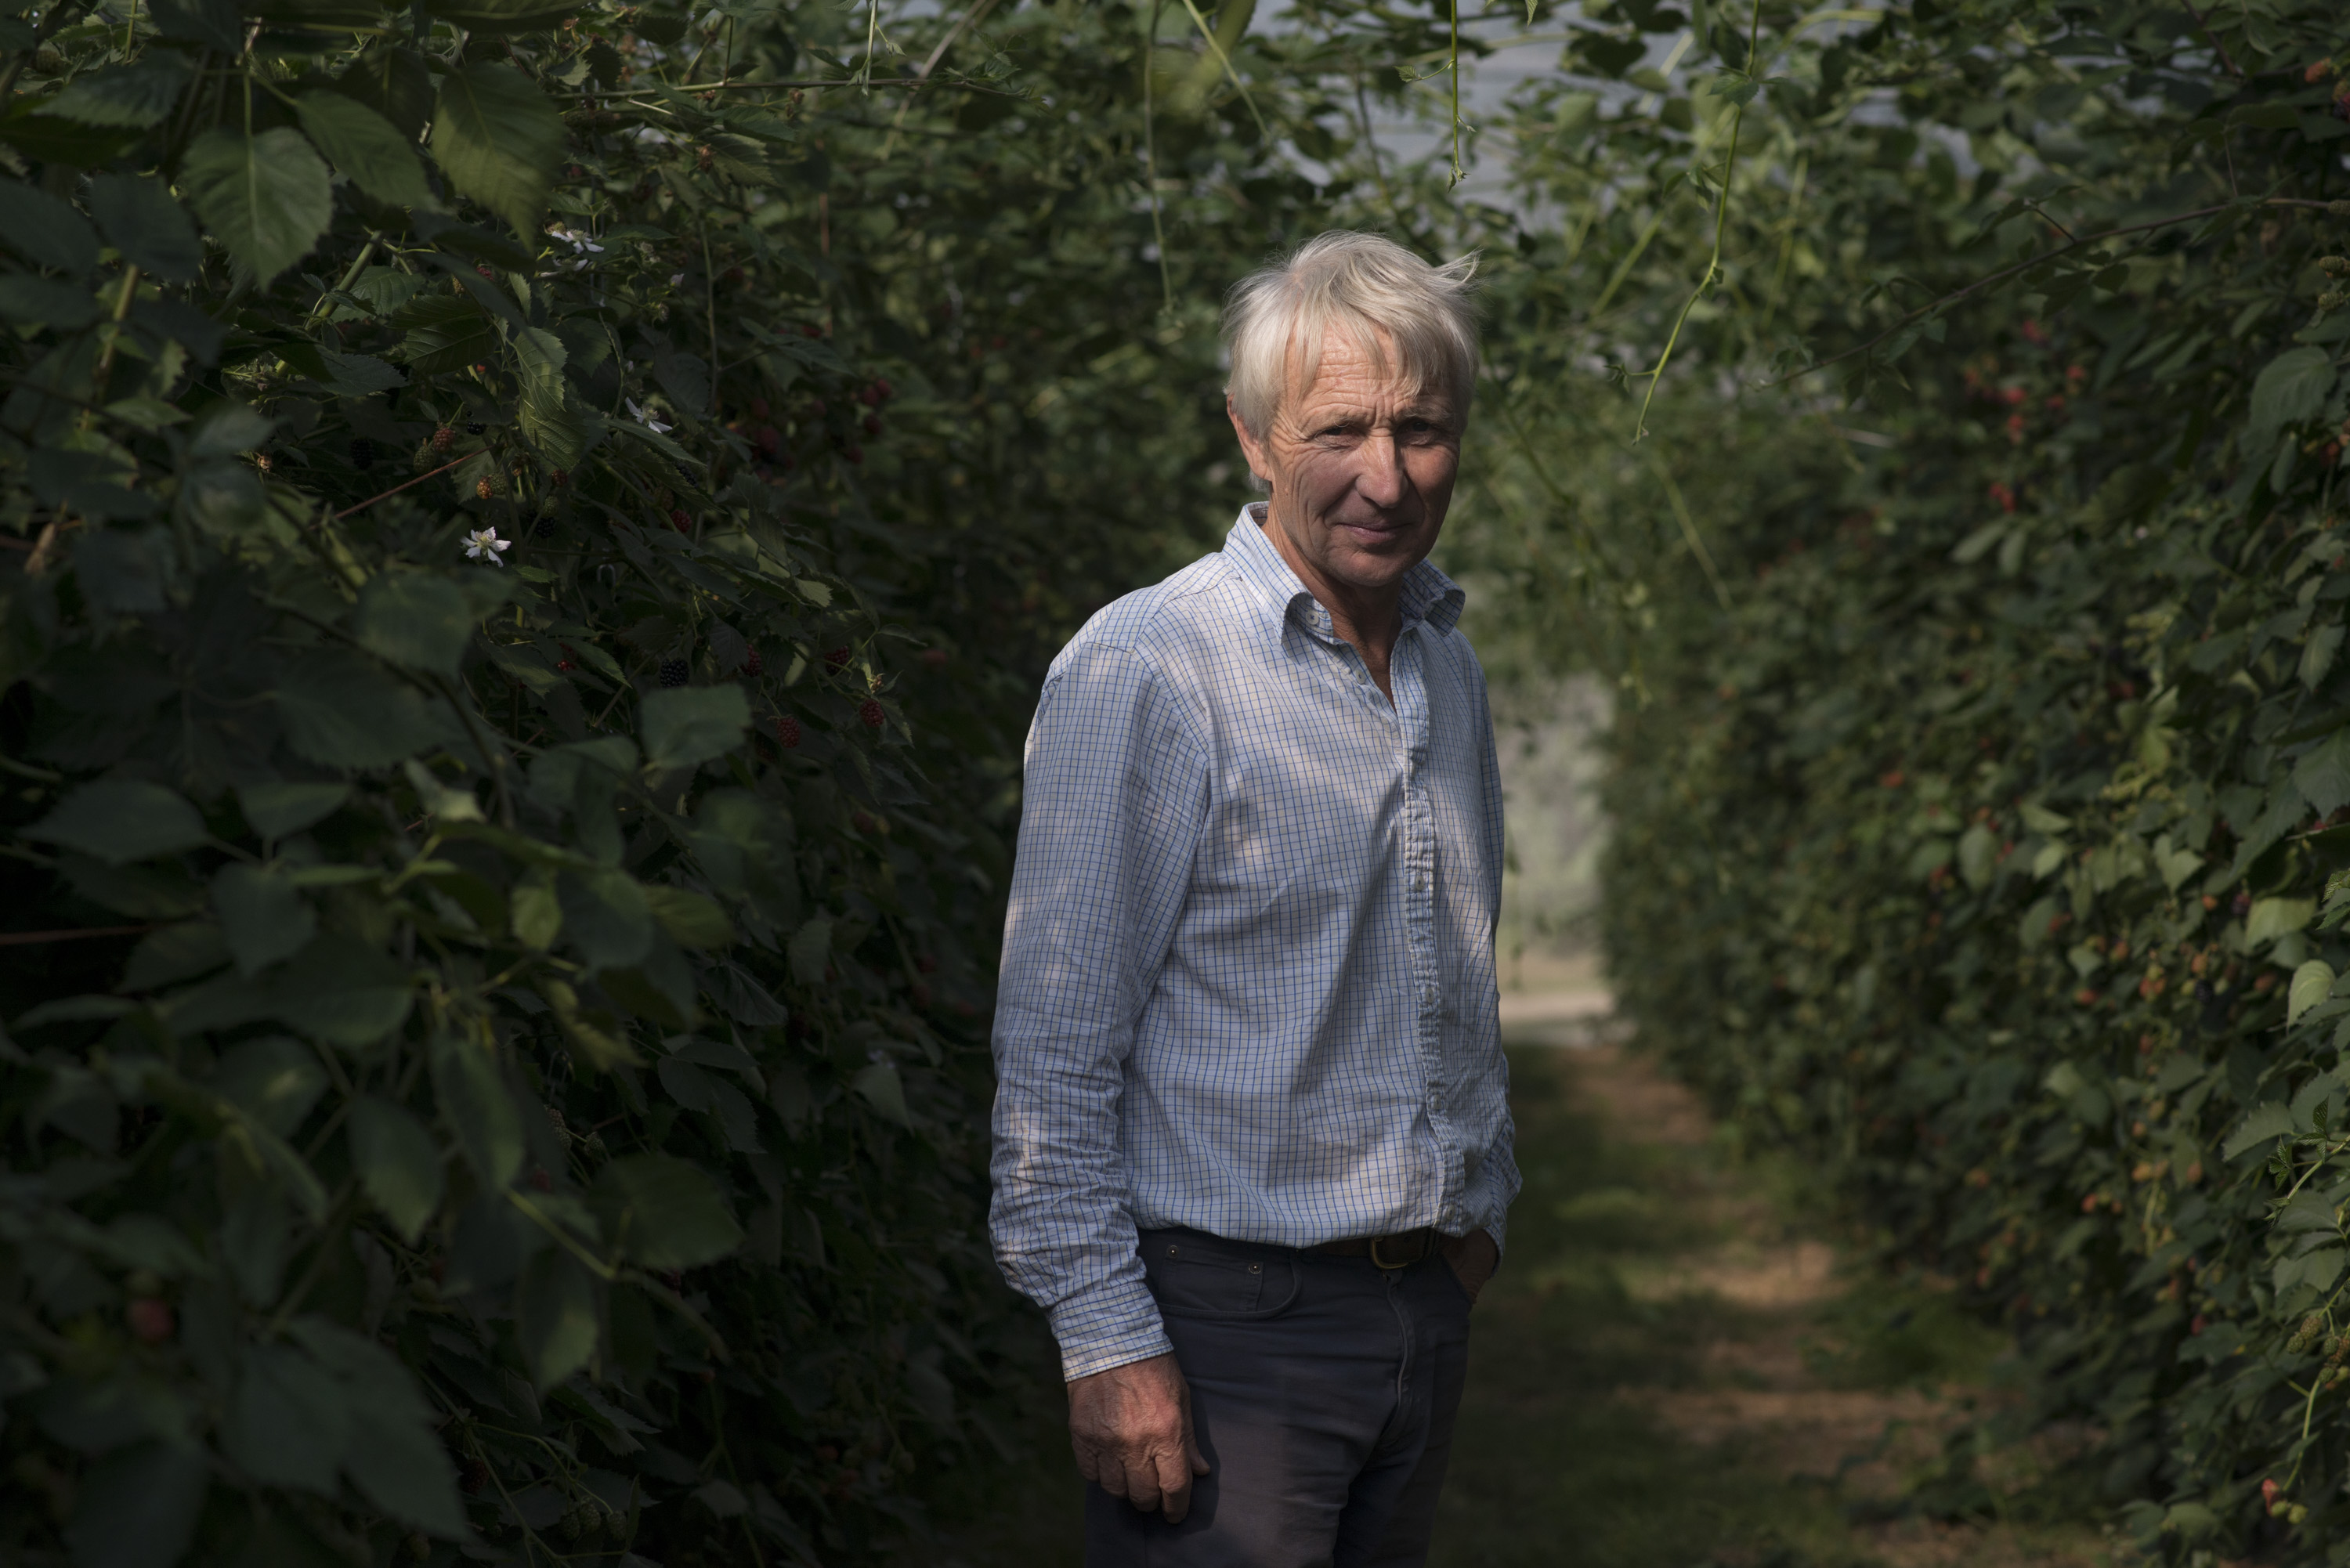 Fruit farmers feel squeeze as Brexit looms